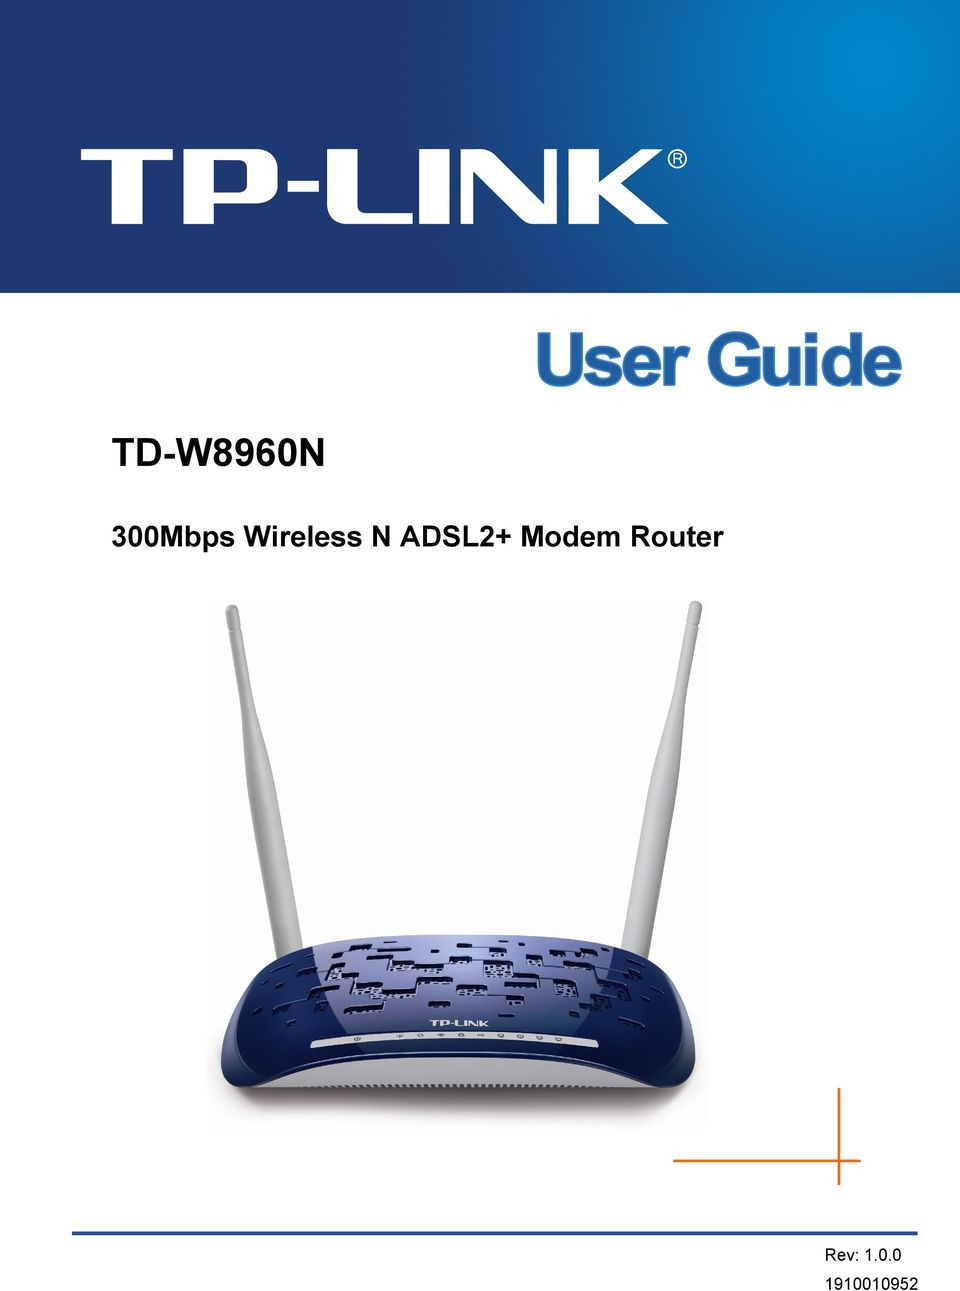 Modem Router Rev: